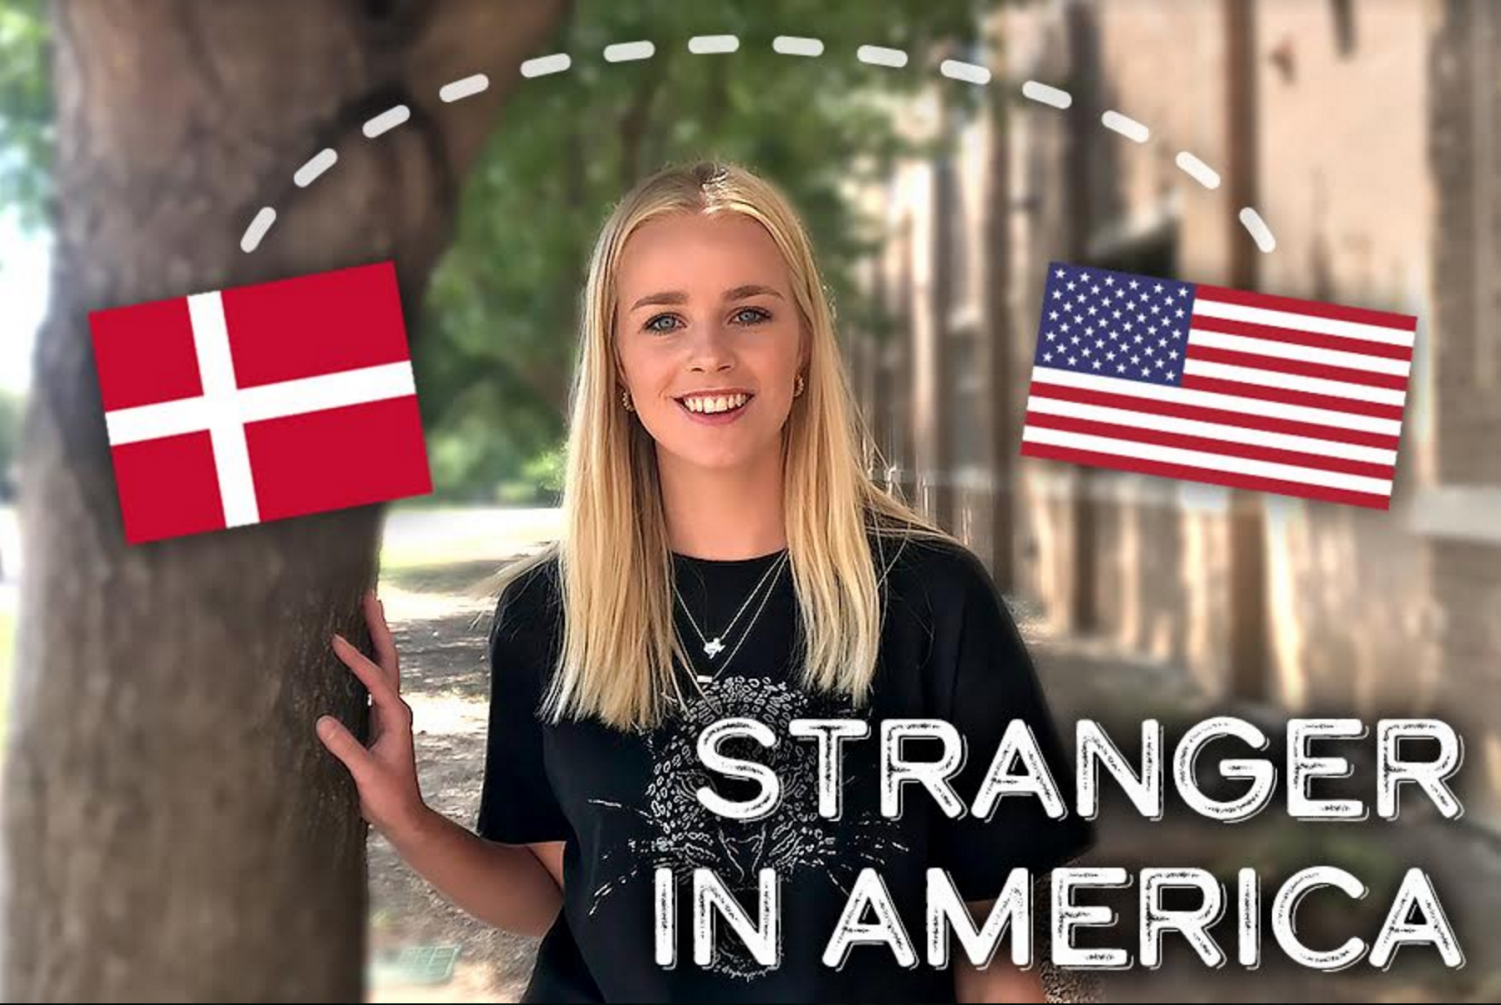 A foreign exchange student from Denmark, Wingspan's Julie Falk talks about all the new things in her life as she embarks on her journey as a Stranger in America.